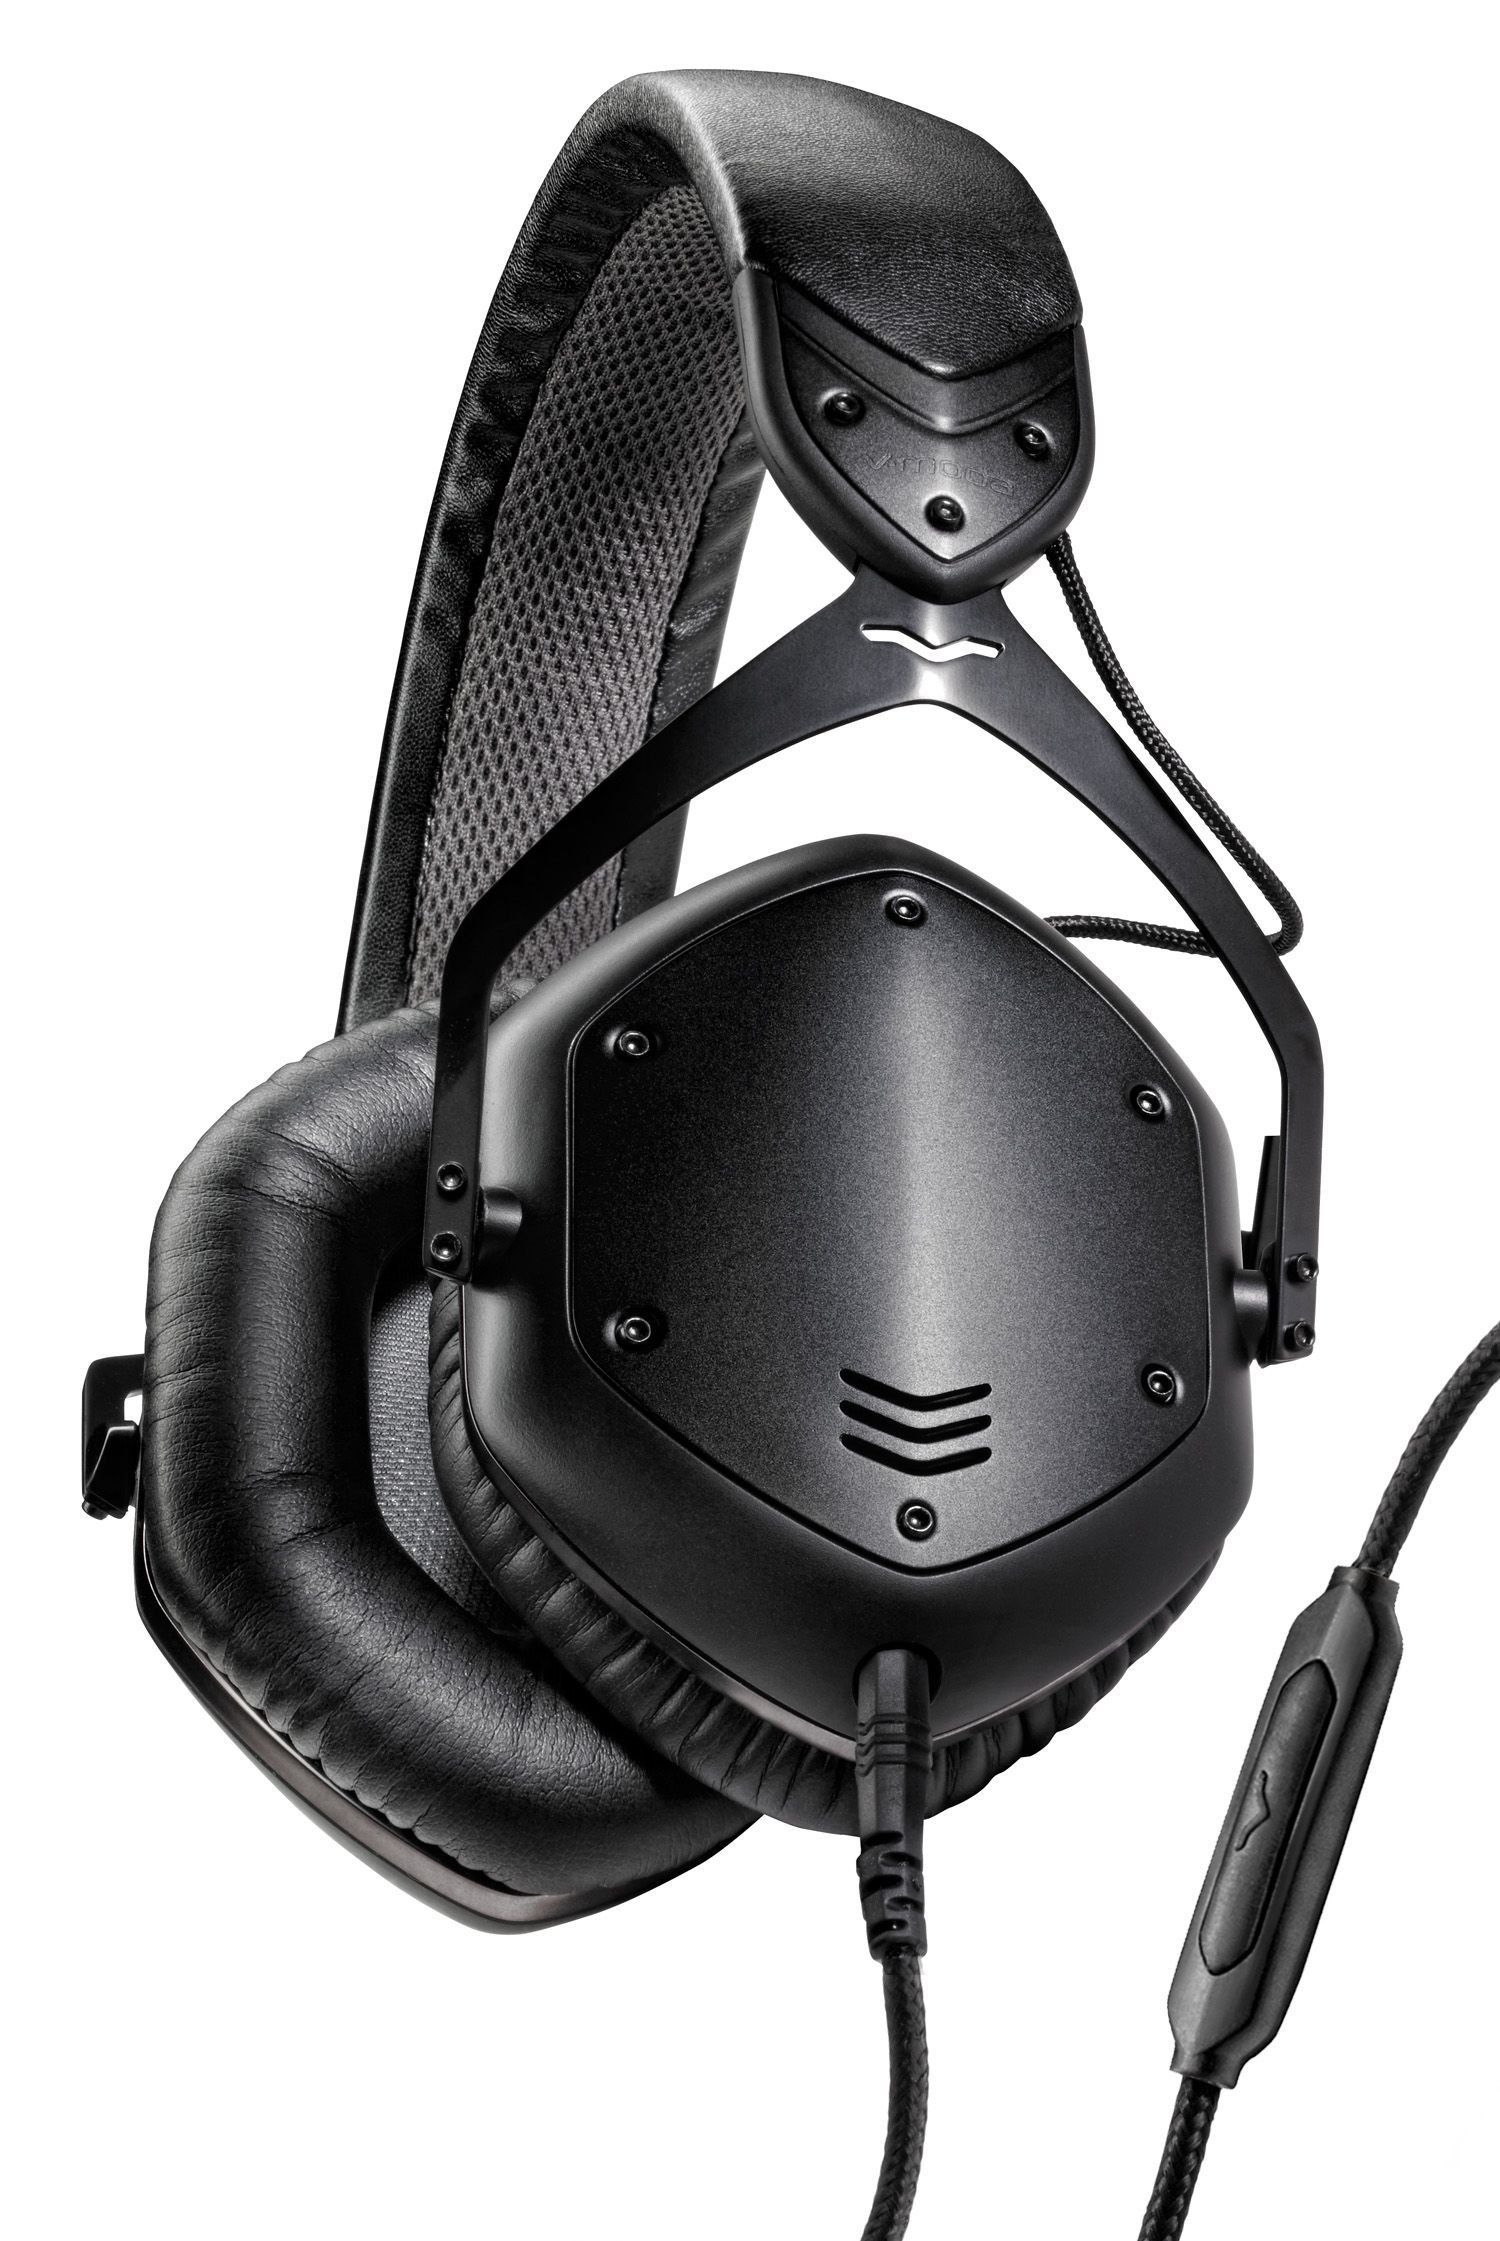 V-MODA Crossfade LP2 Vocal Limited Edition Over-Ear Noise-Isolating Metal Headphone (Matte Black) by V-MODA